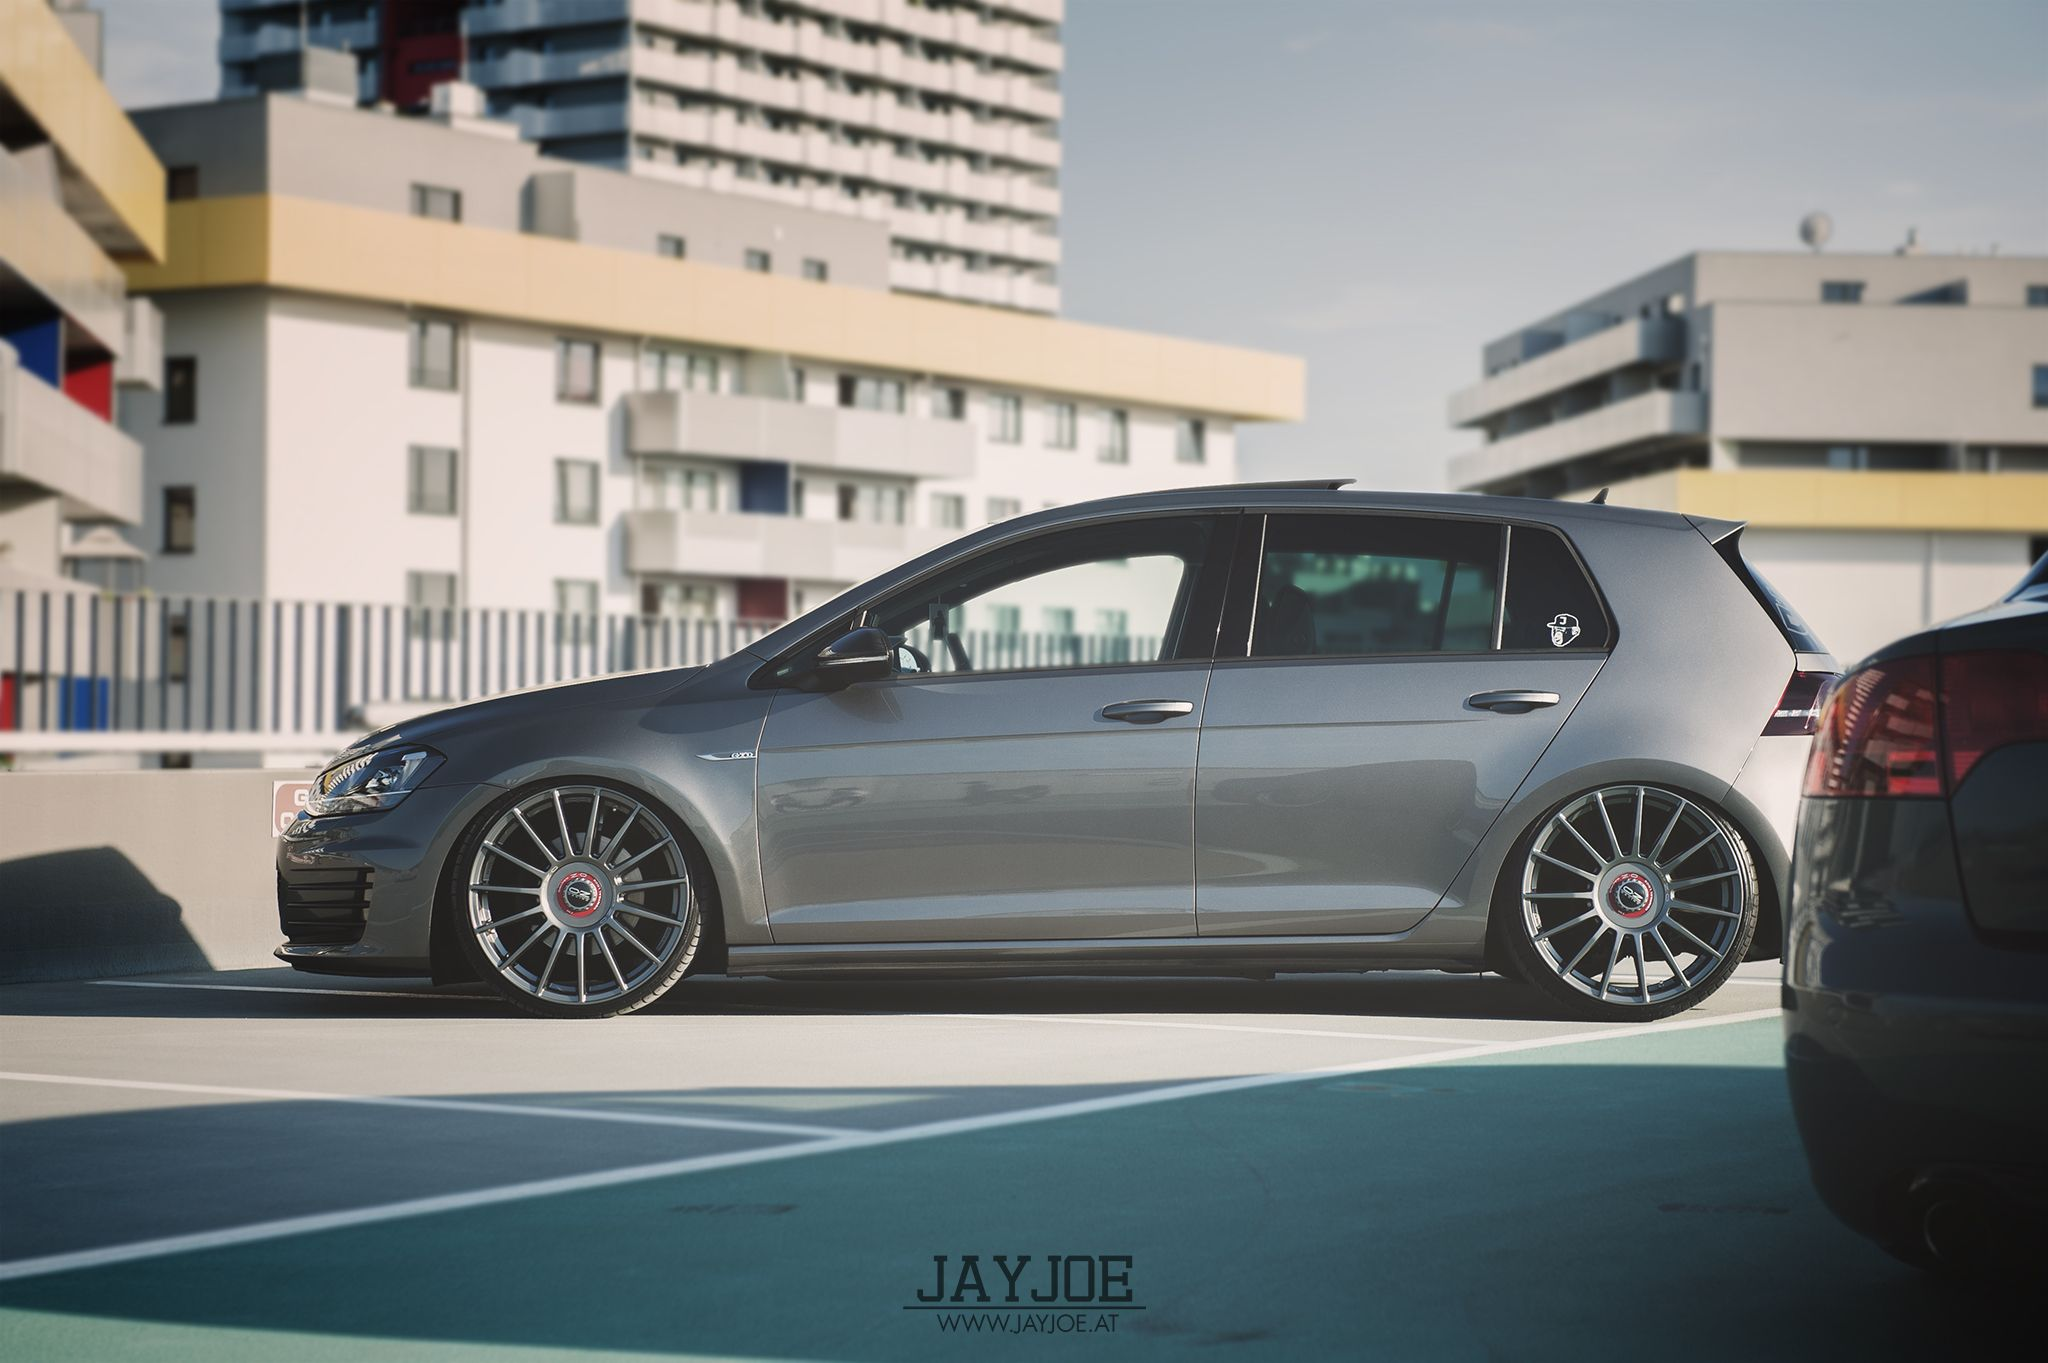 Vw Golf Mk7 Gtd Www Jayjoe At ゴルフ